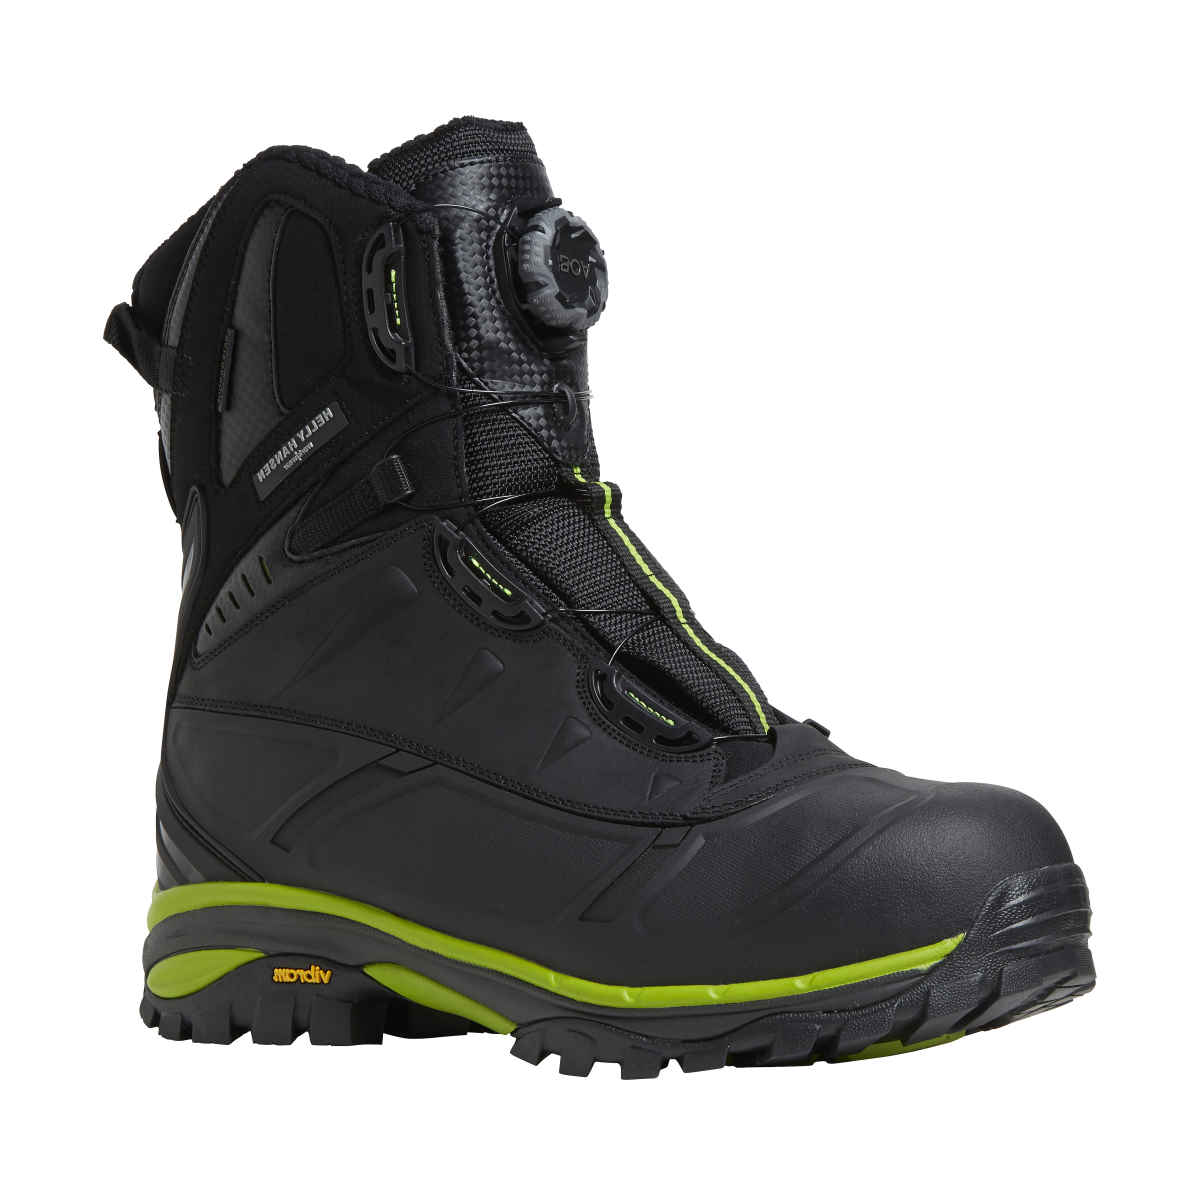 SF7835 Helly Hansen Magni Boa Winterboot - Main